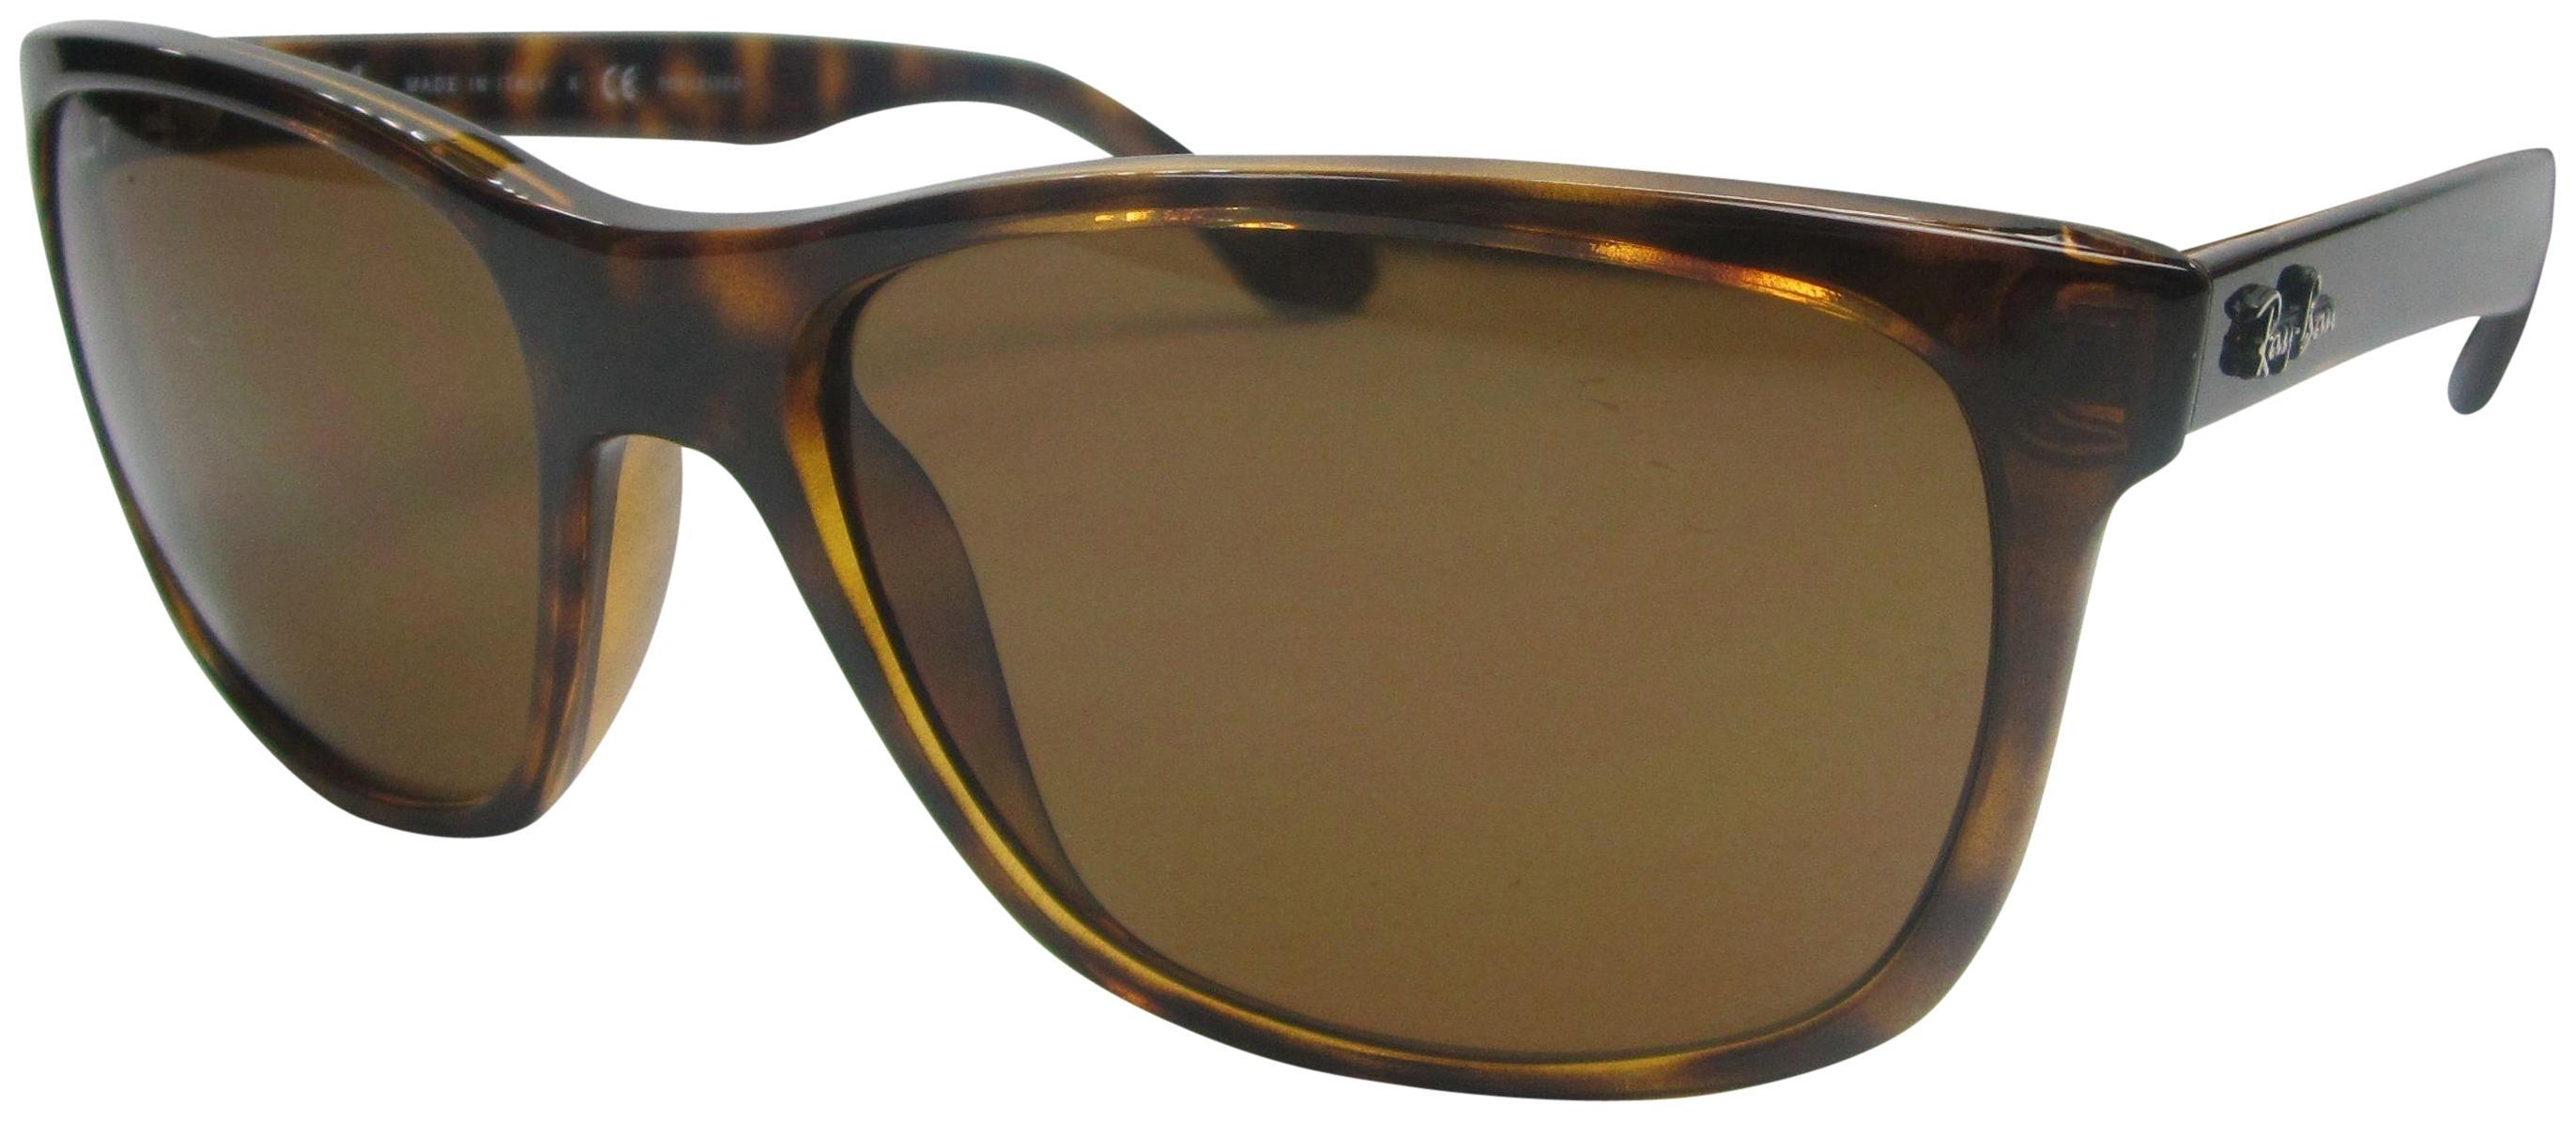 de5d2e220e16e ... coupon code for ray ban made in italyray ban rb4181 710 83 polarized  sunglasses 05915 5e9ae